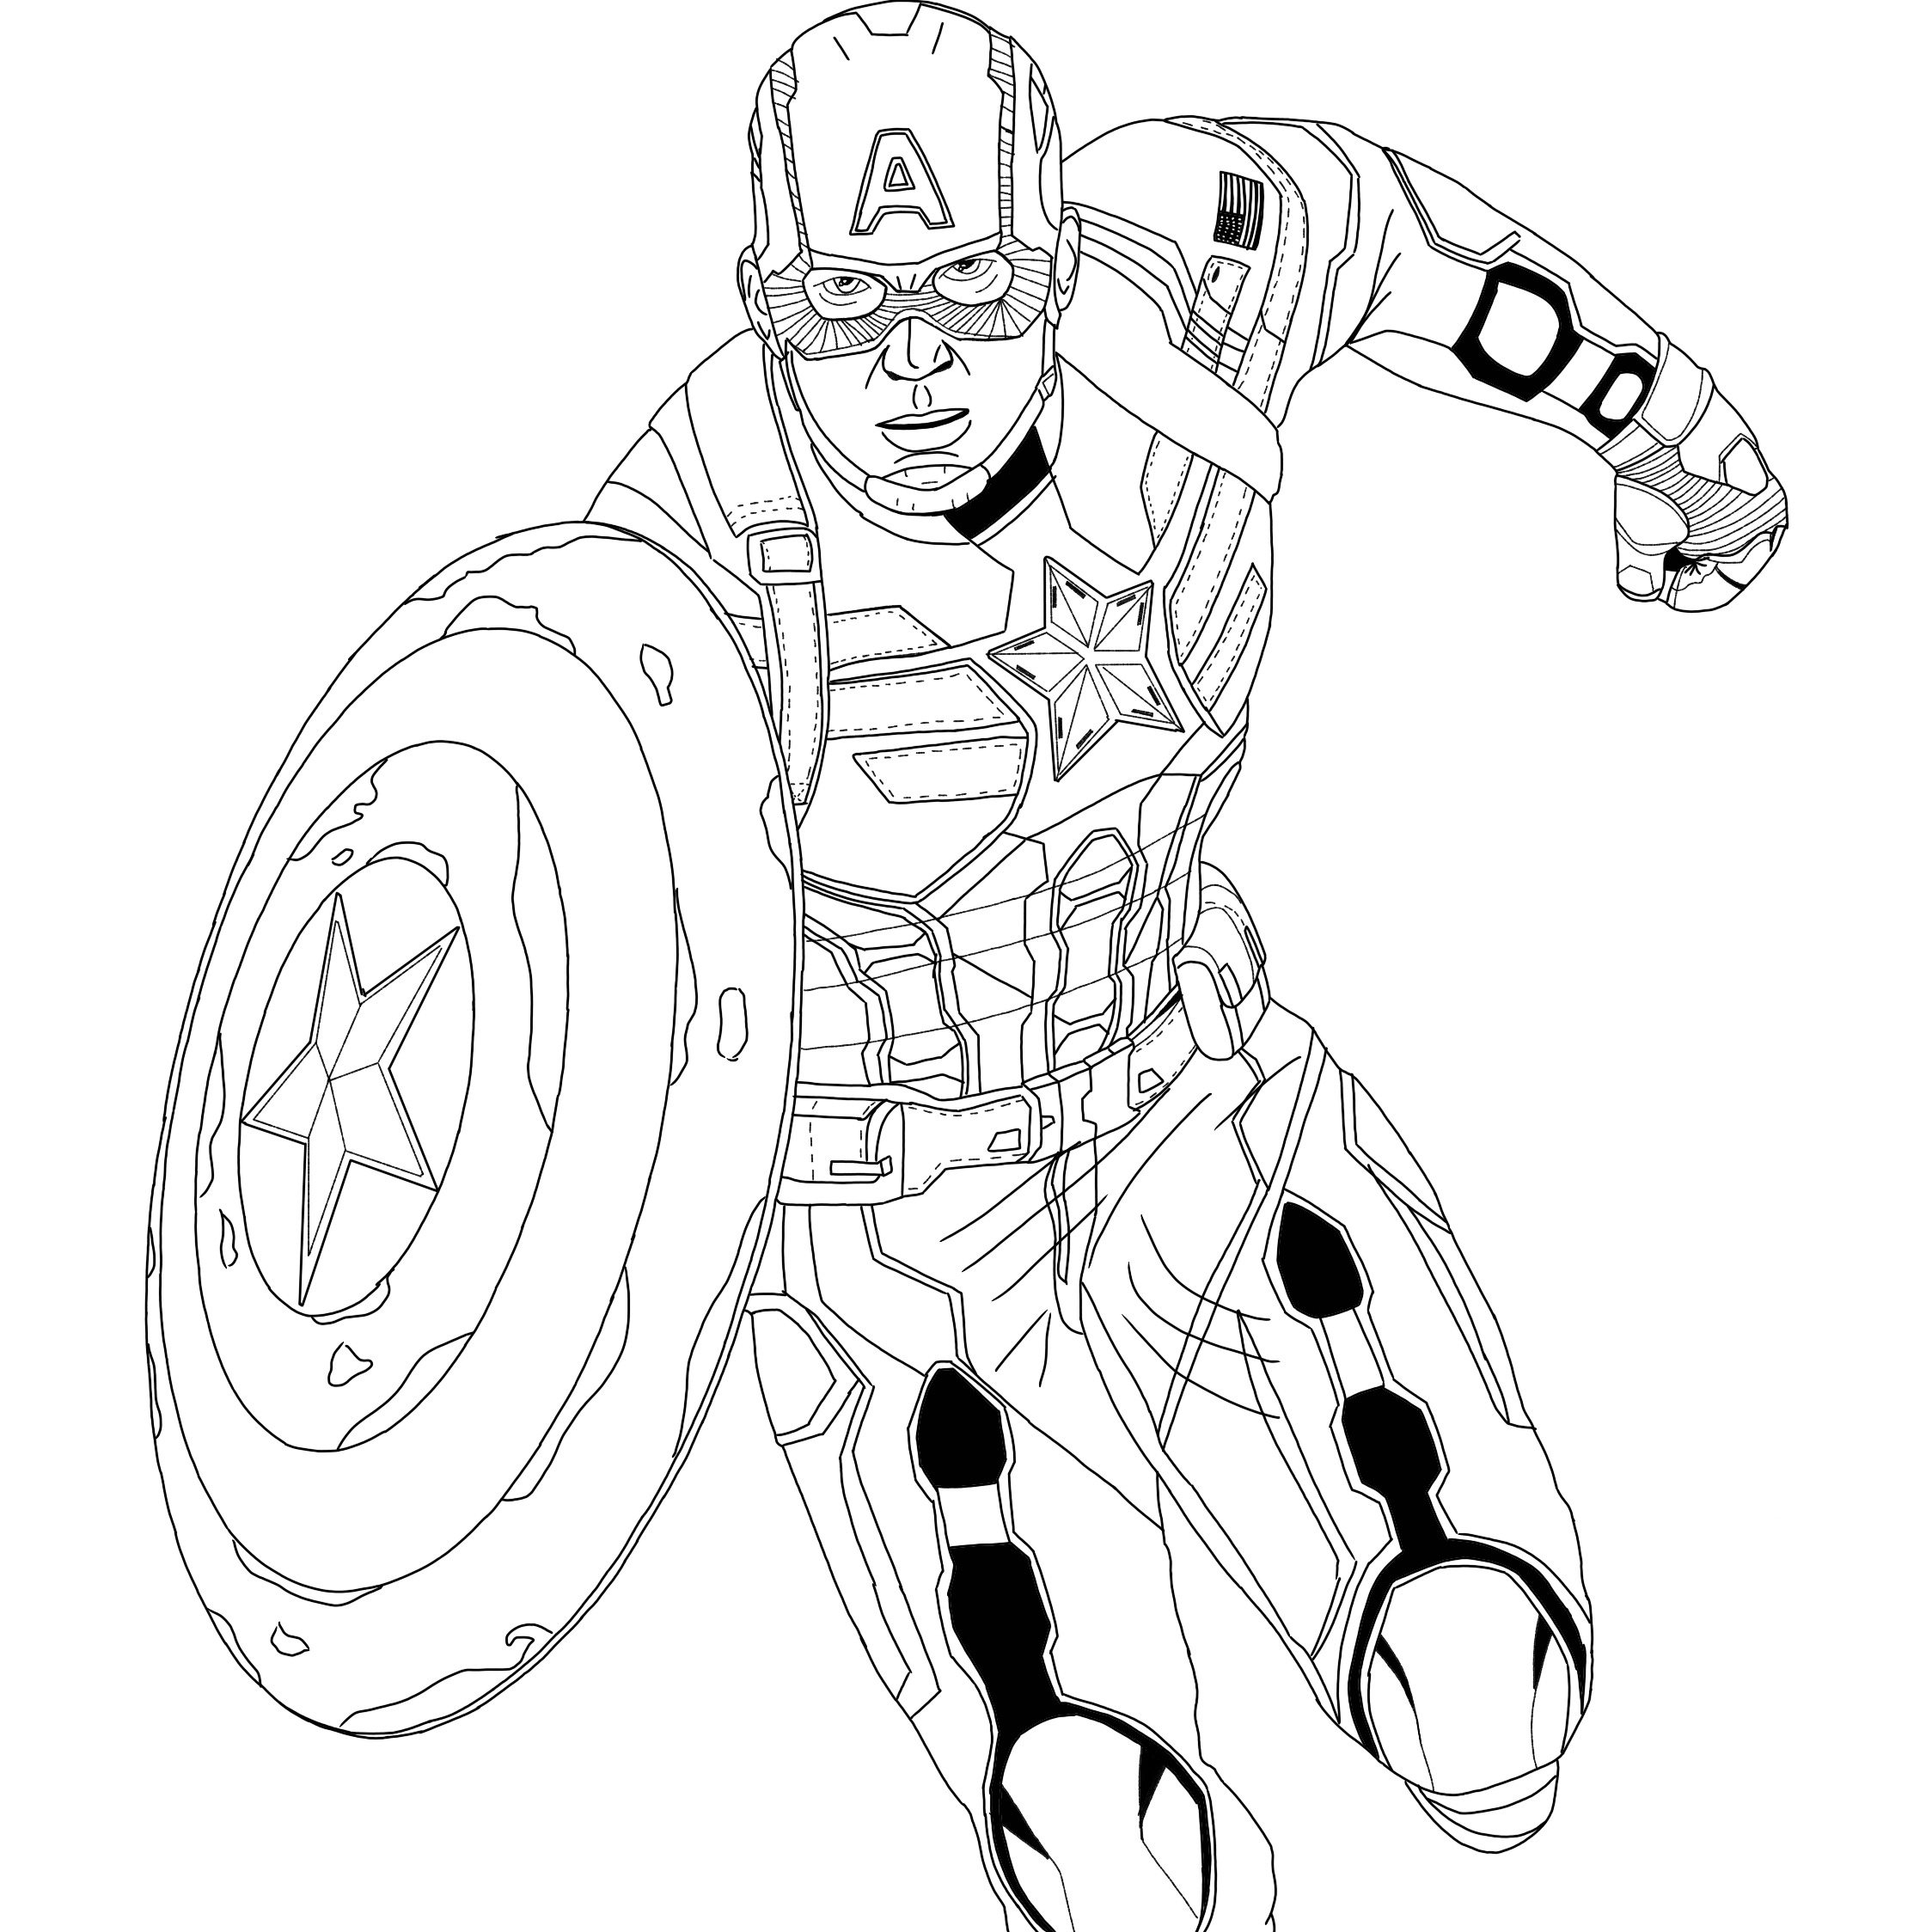 Captain America Winter Soldier Coloring Pages Captain America Winter Soldier Suit Superhero Coloring Pages